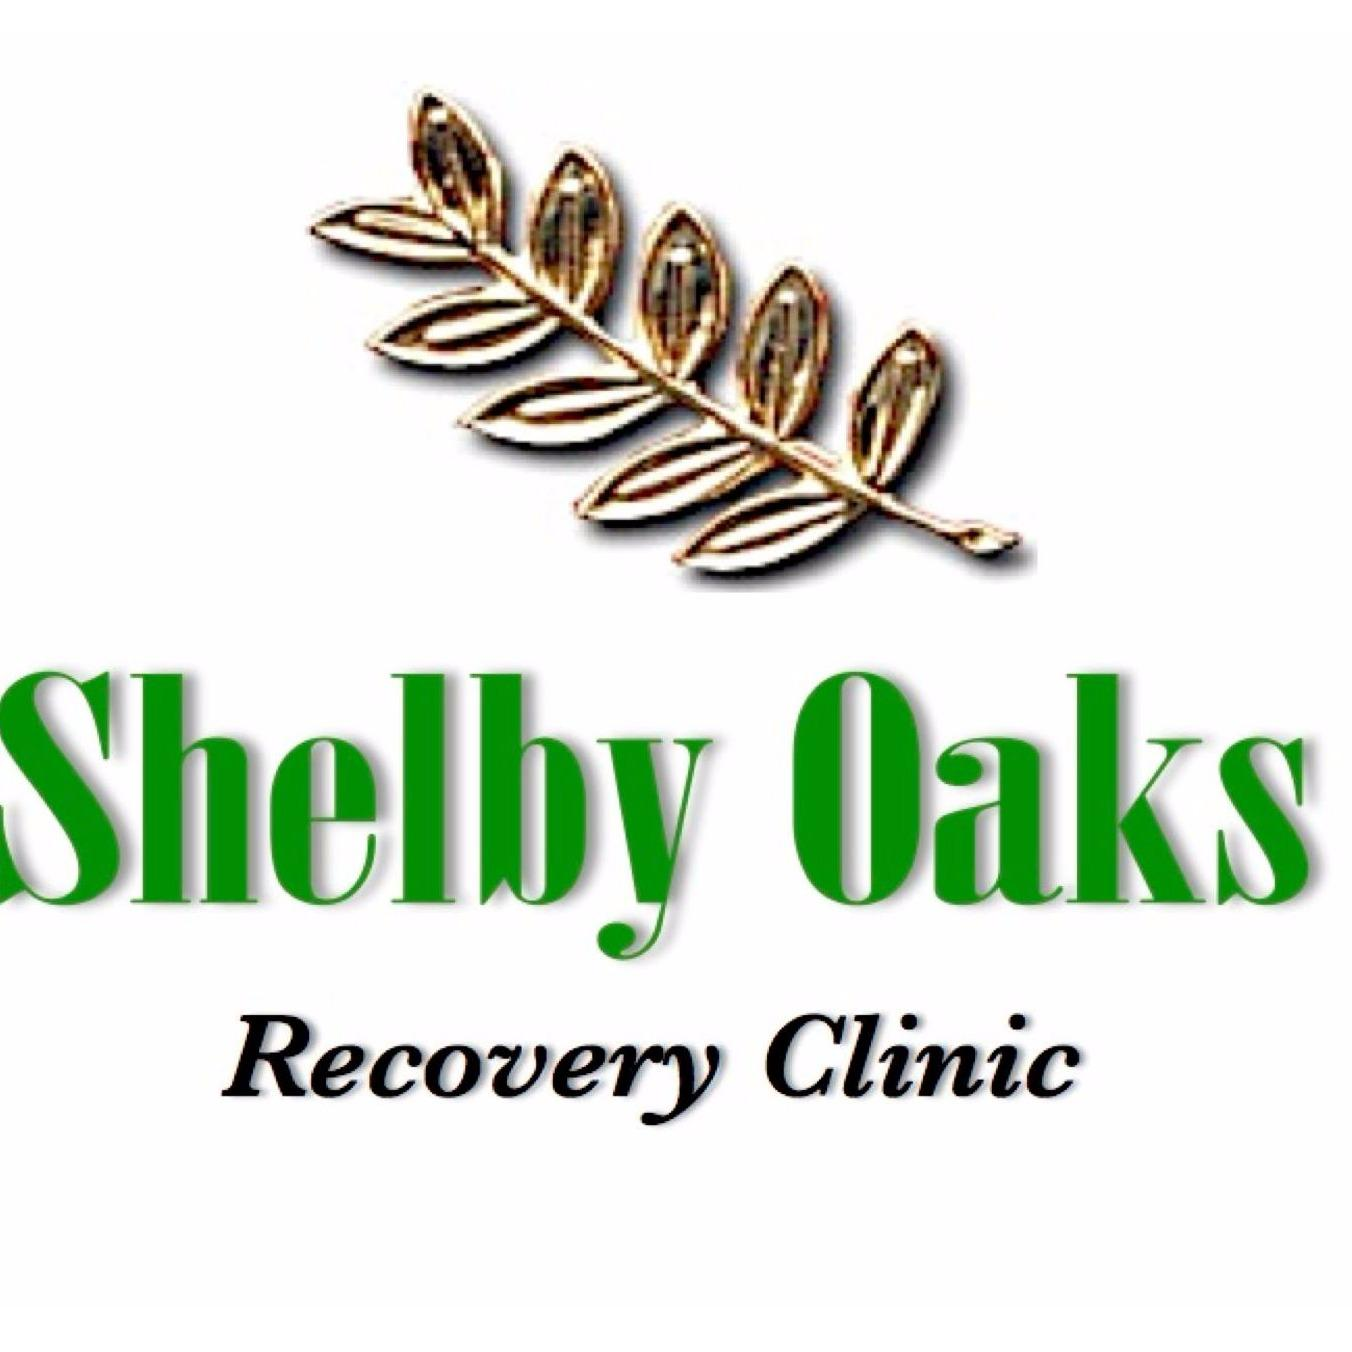 Shelby Oaks Recovery Clinic